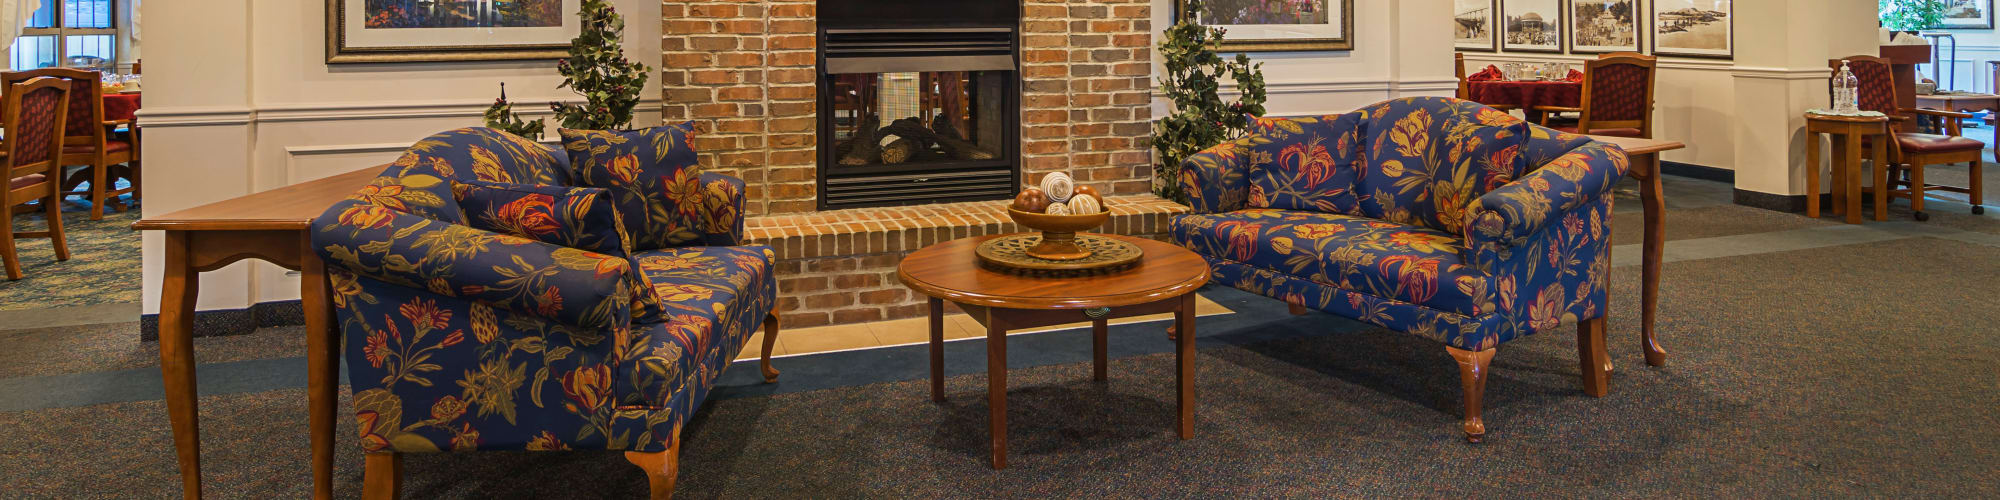 Senior living options at the senior living community in Michigan City